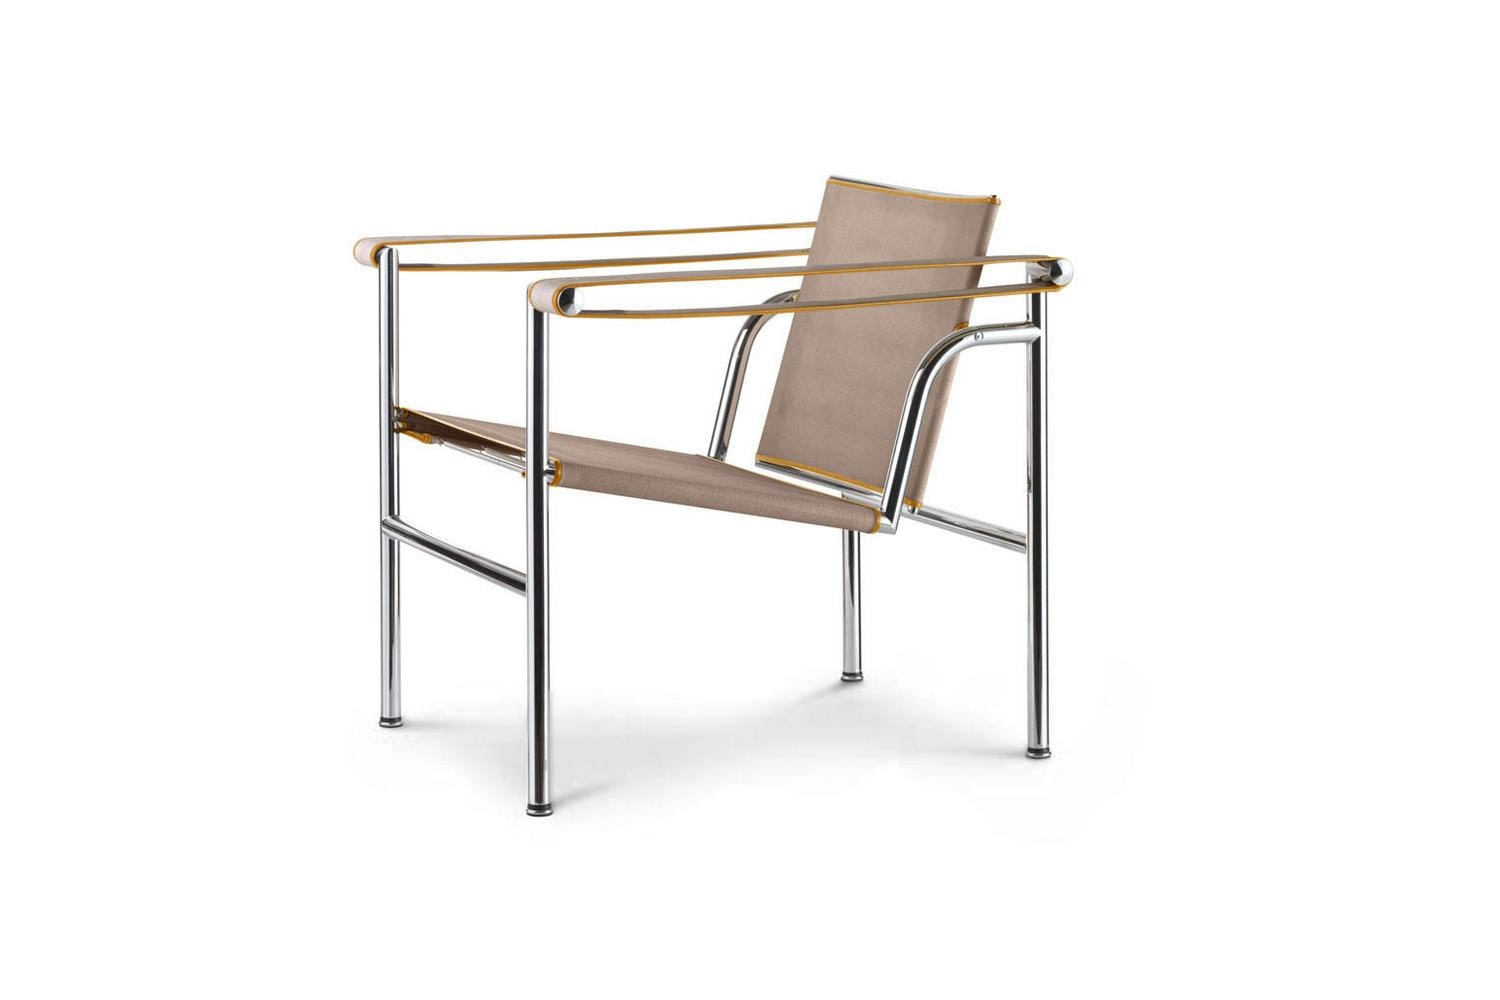 LC1 UAM Armchair by Le Corbusier, Pierre Jeanneret, Charlotte Perriand for Cassina